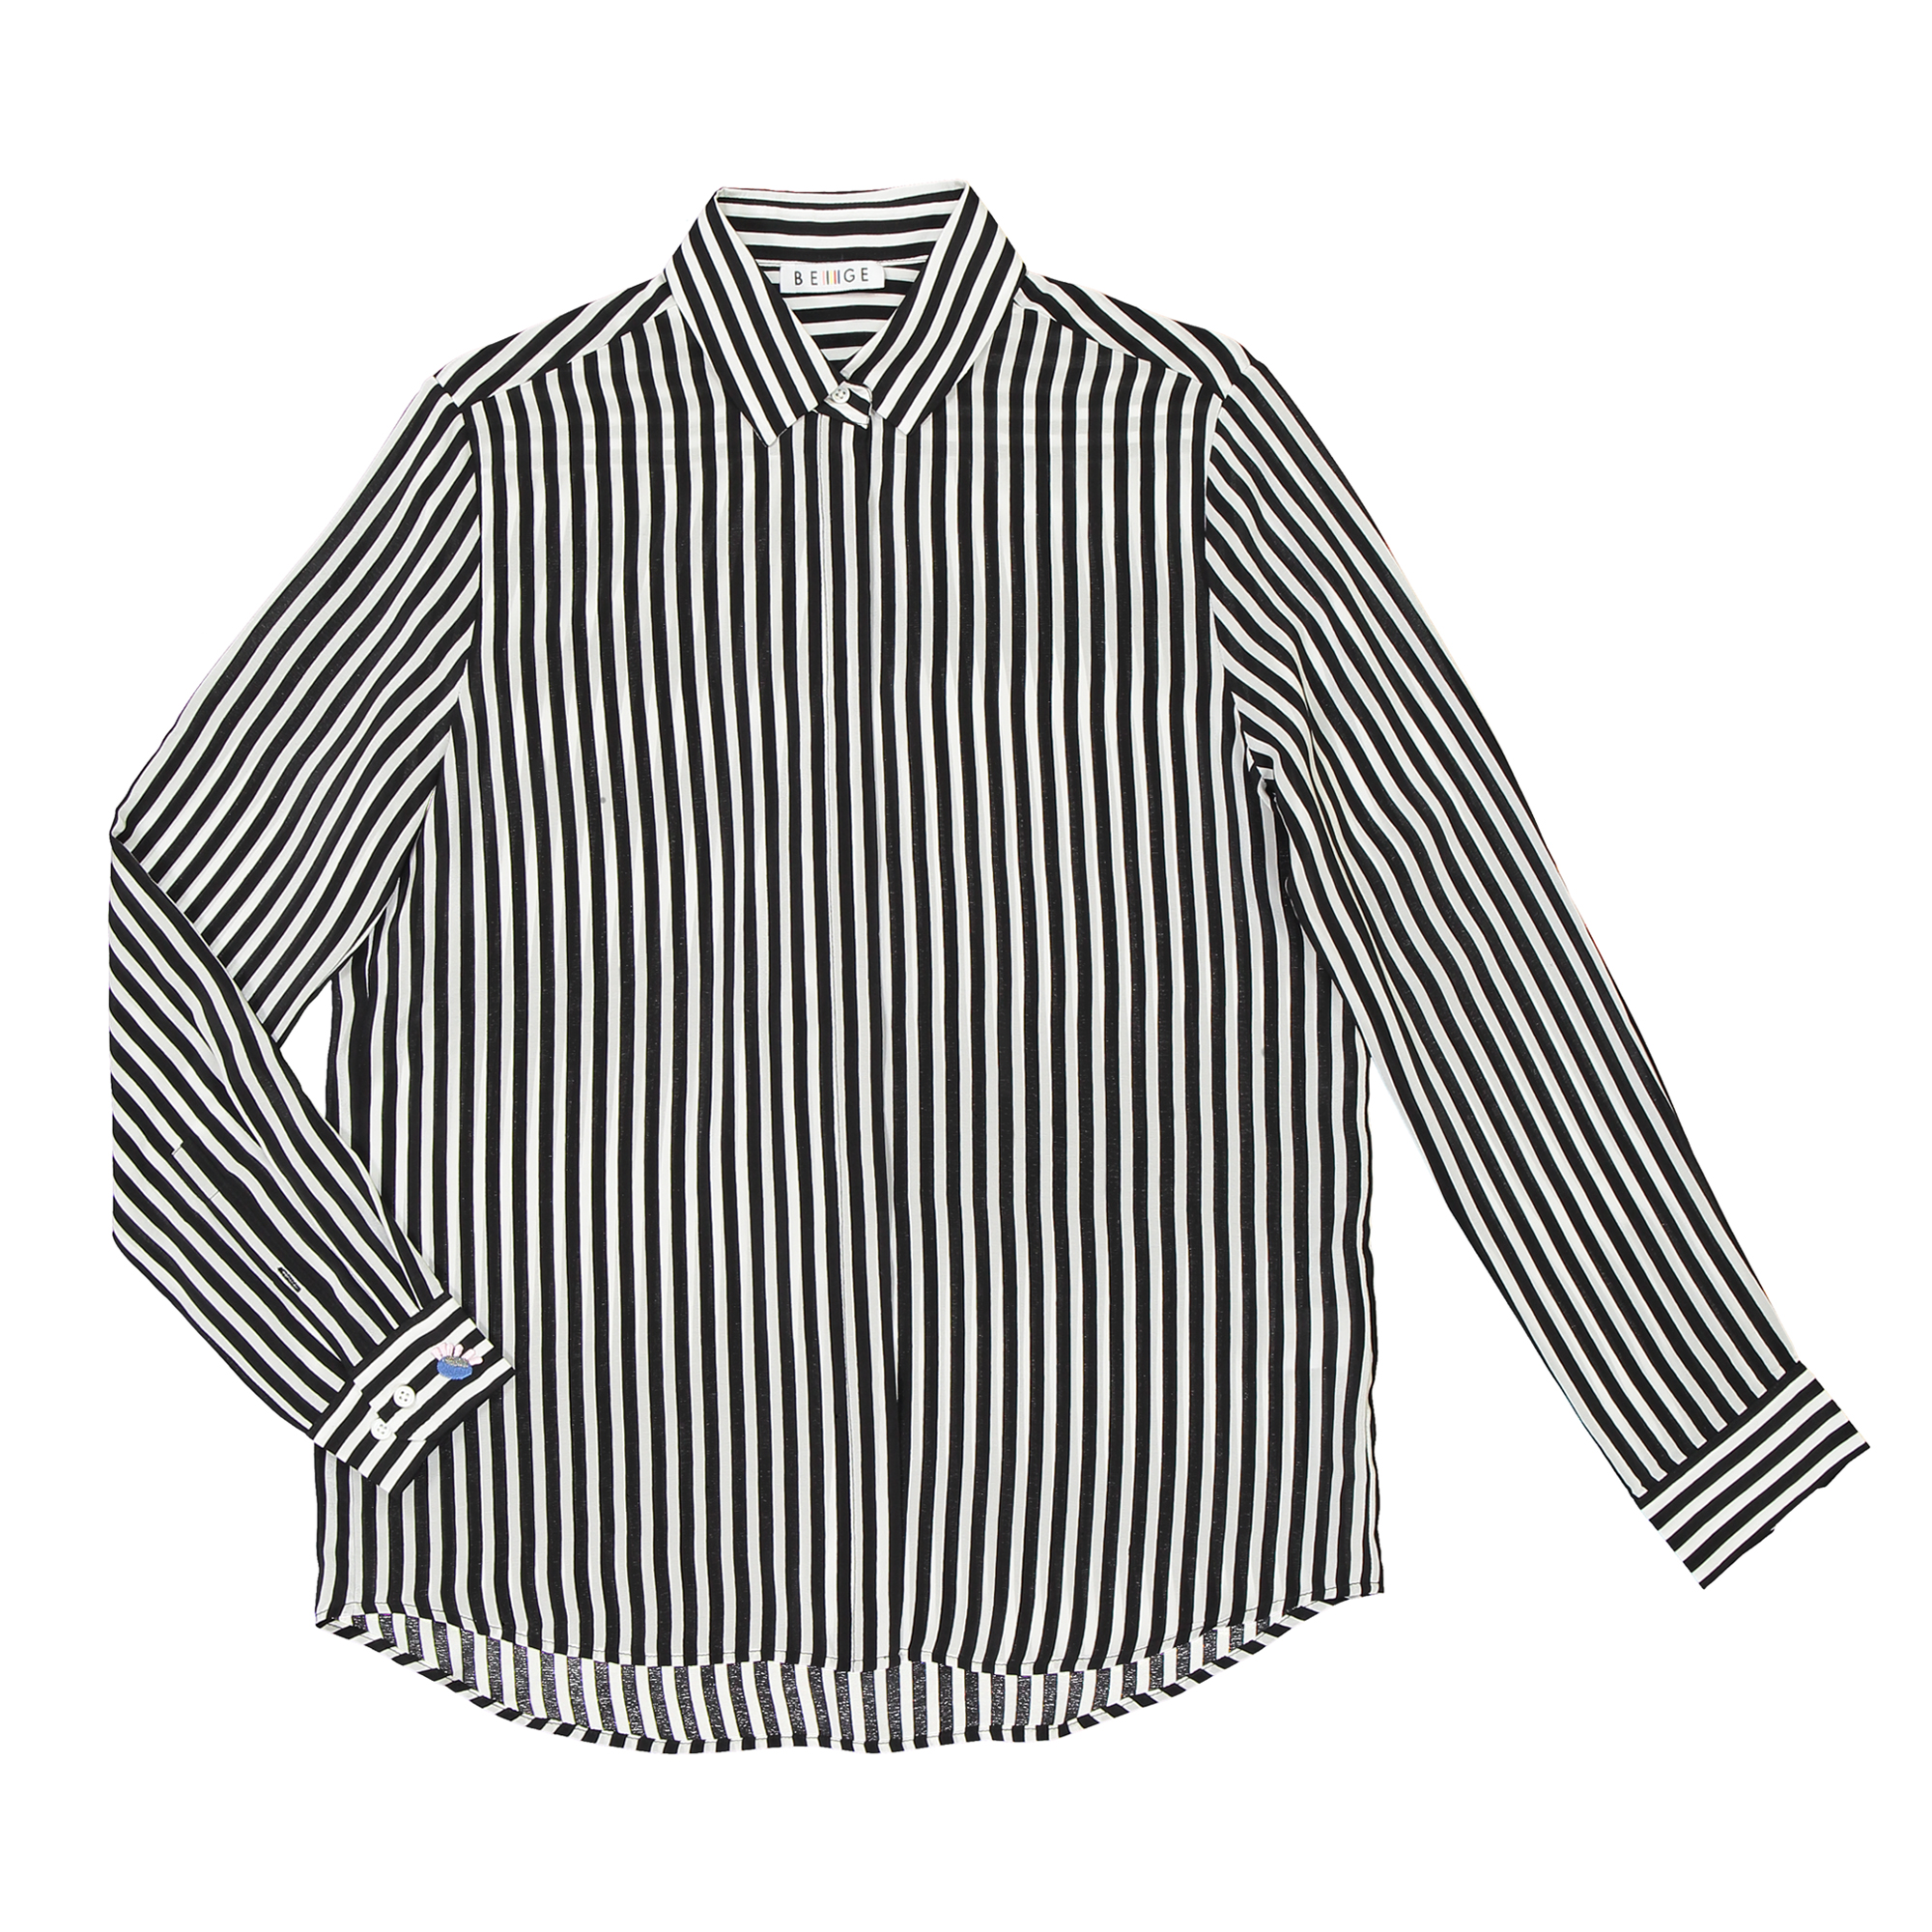 Silk+Shirt_Stripe+2.jpg